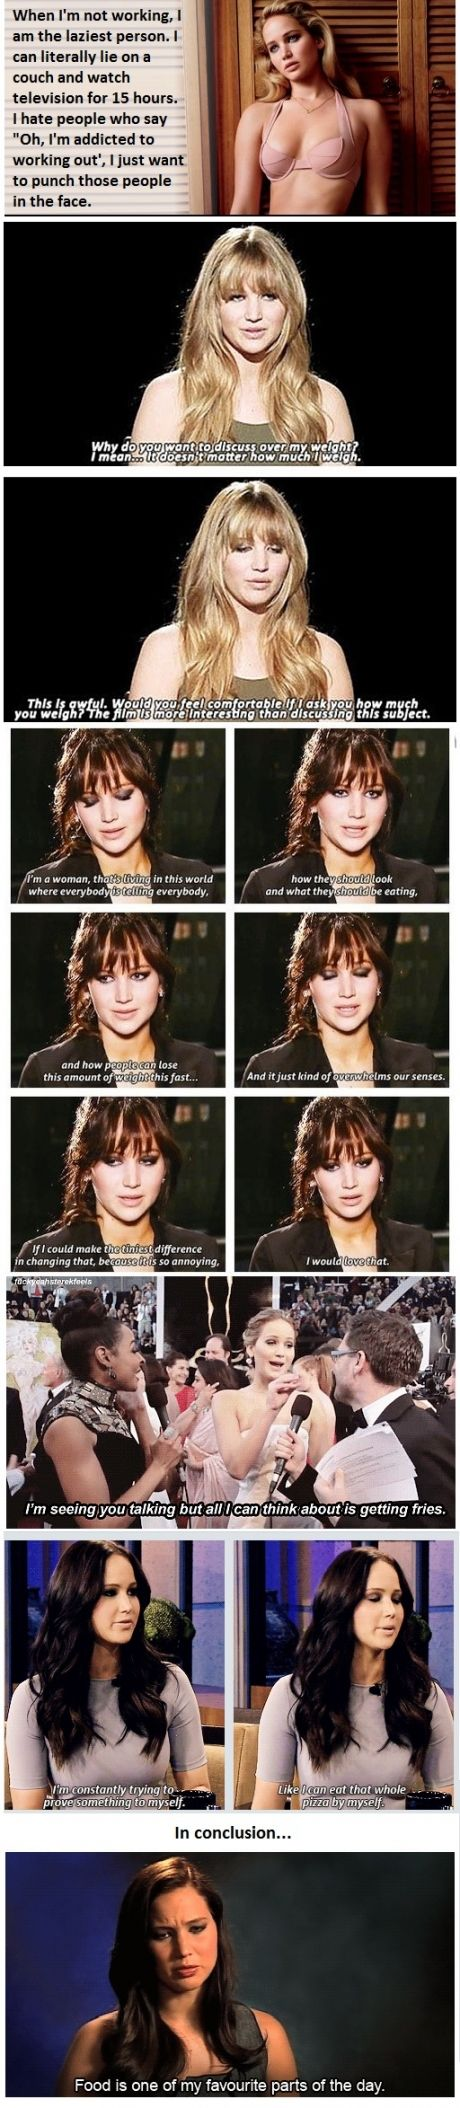 I love Jennifer Lawrence. She's inspiring and such a down-to-earth girl. She's got her priorities straight ;)